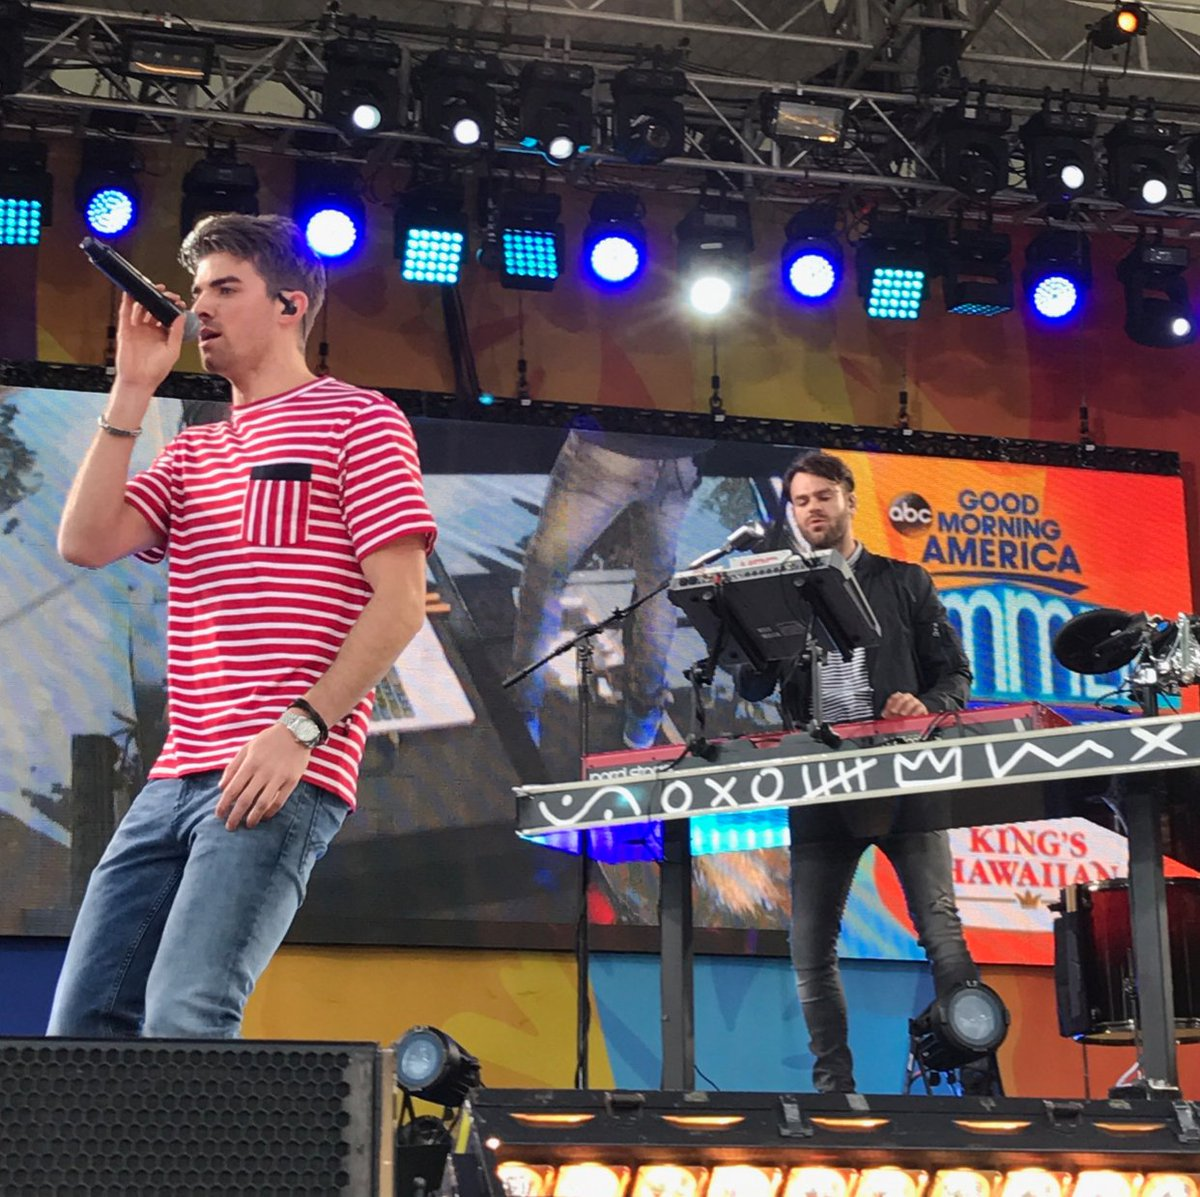 Thanks to the @thechainsmokers for the perfect Friday at the @KingsHawaiian summer concert series on @GMA! #ChainsmokersOnGMA <br>http://pic.twitter.com/Wq2wtO352j